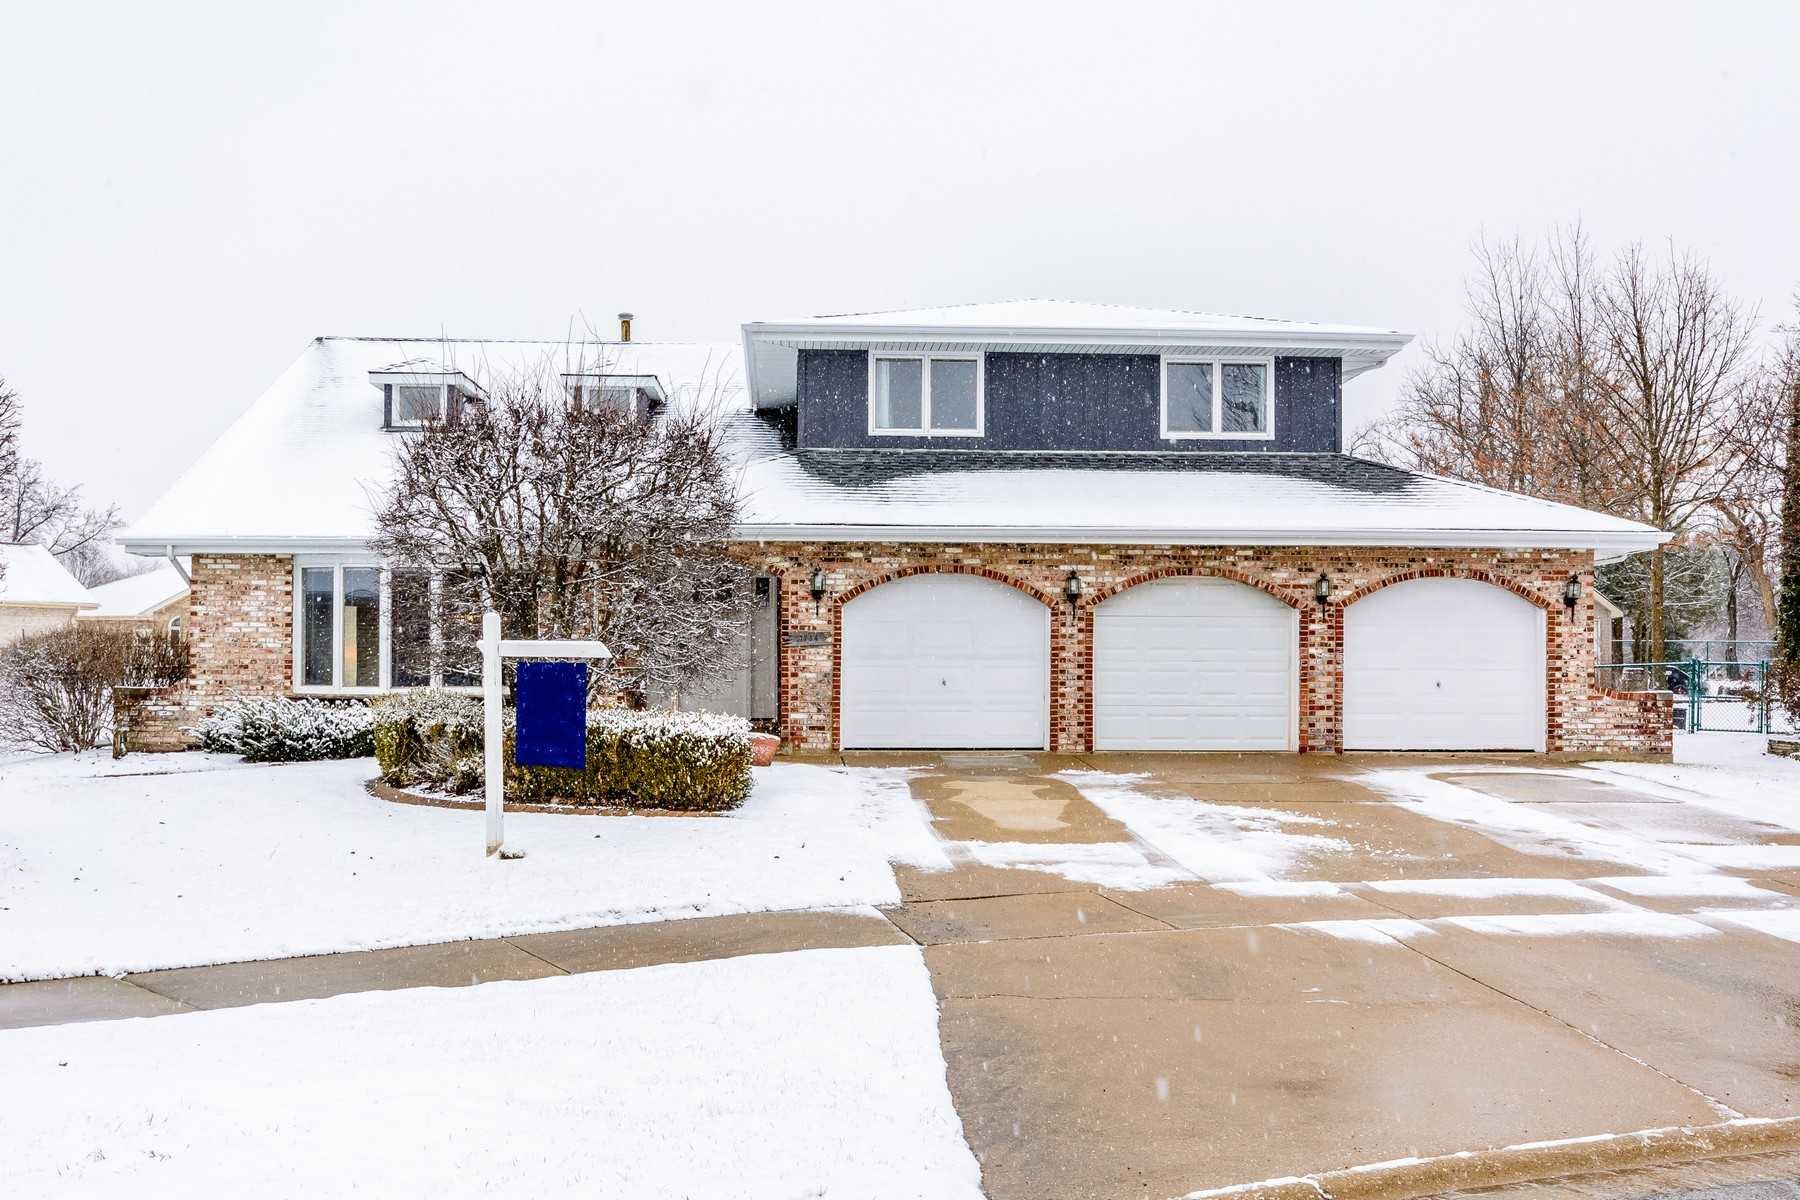 Single Family Home for Sale at Beautiful Cul-de-sac Home 11734 Ballinary Court Orland Park, Illinois, 60467 United States